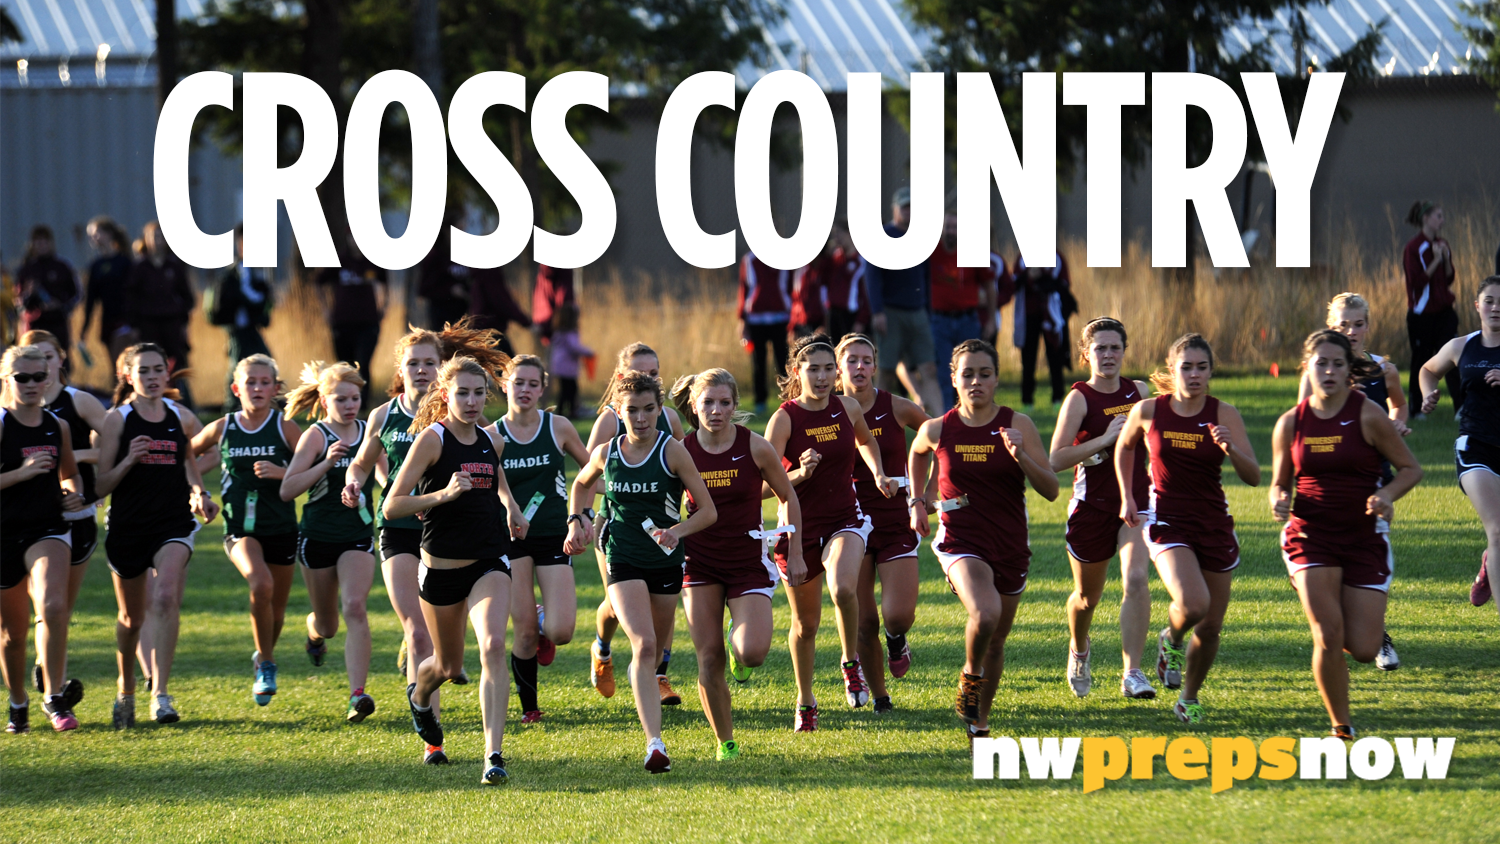 new product 73e1e 6ed1d Cross country roundup: Caleb Lloyd, Mead win Nike Battle for ...